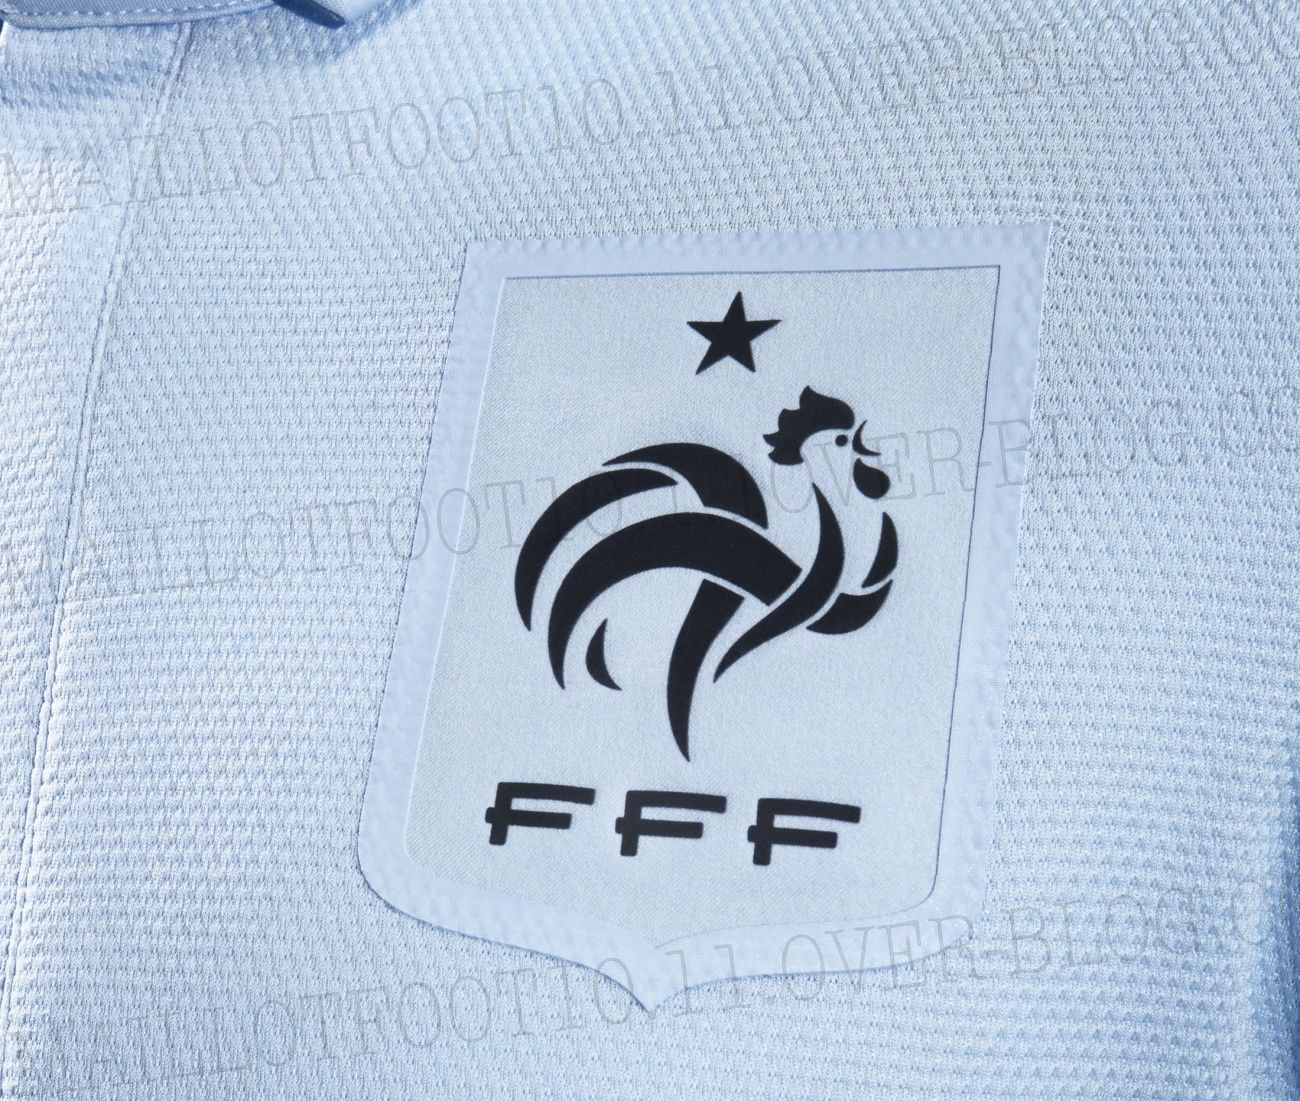 Nouveau maillot equipe de france les photos officielles for Maillot equipe de france exterieur 2013